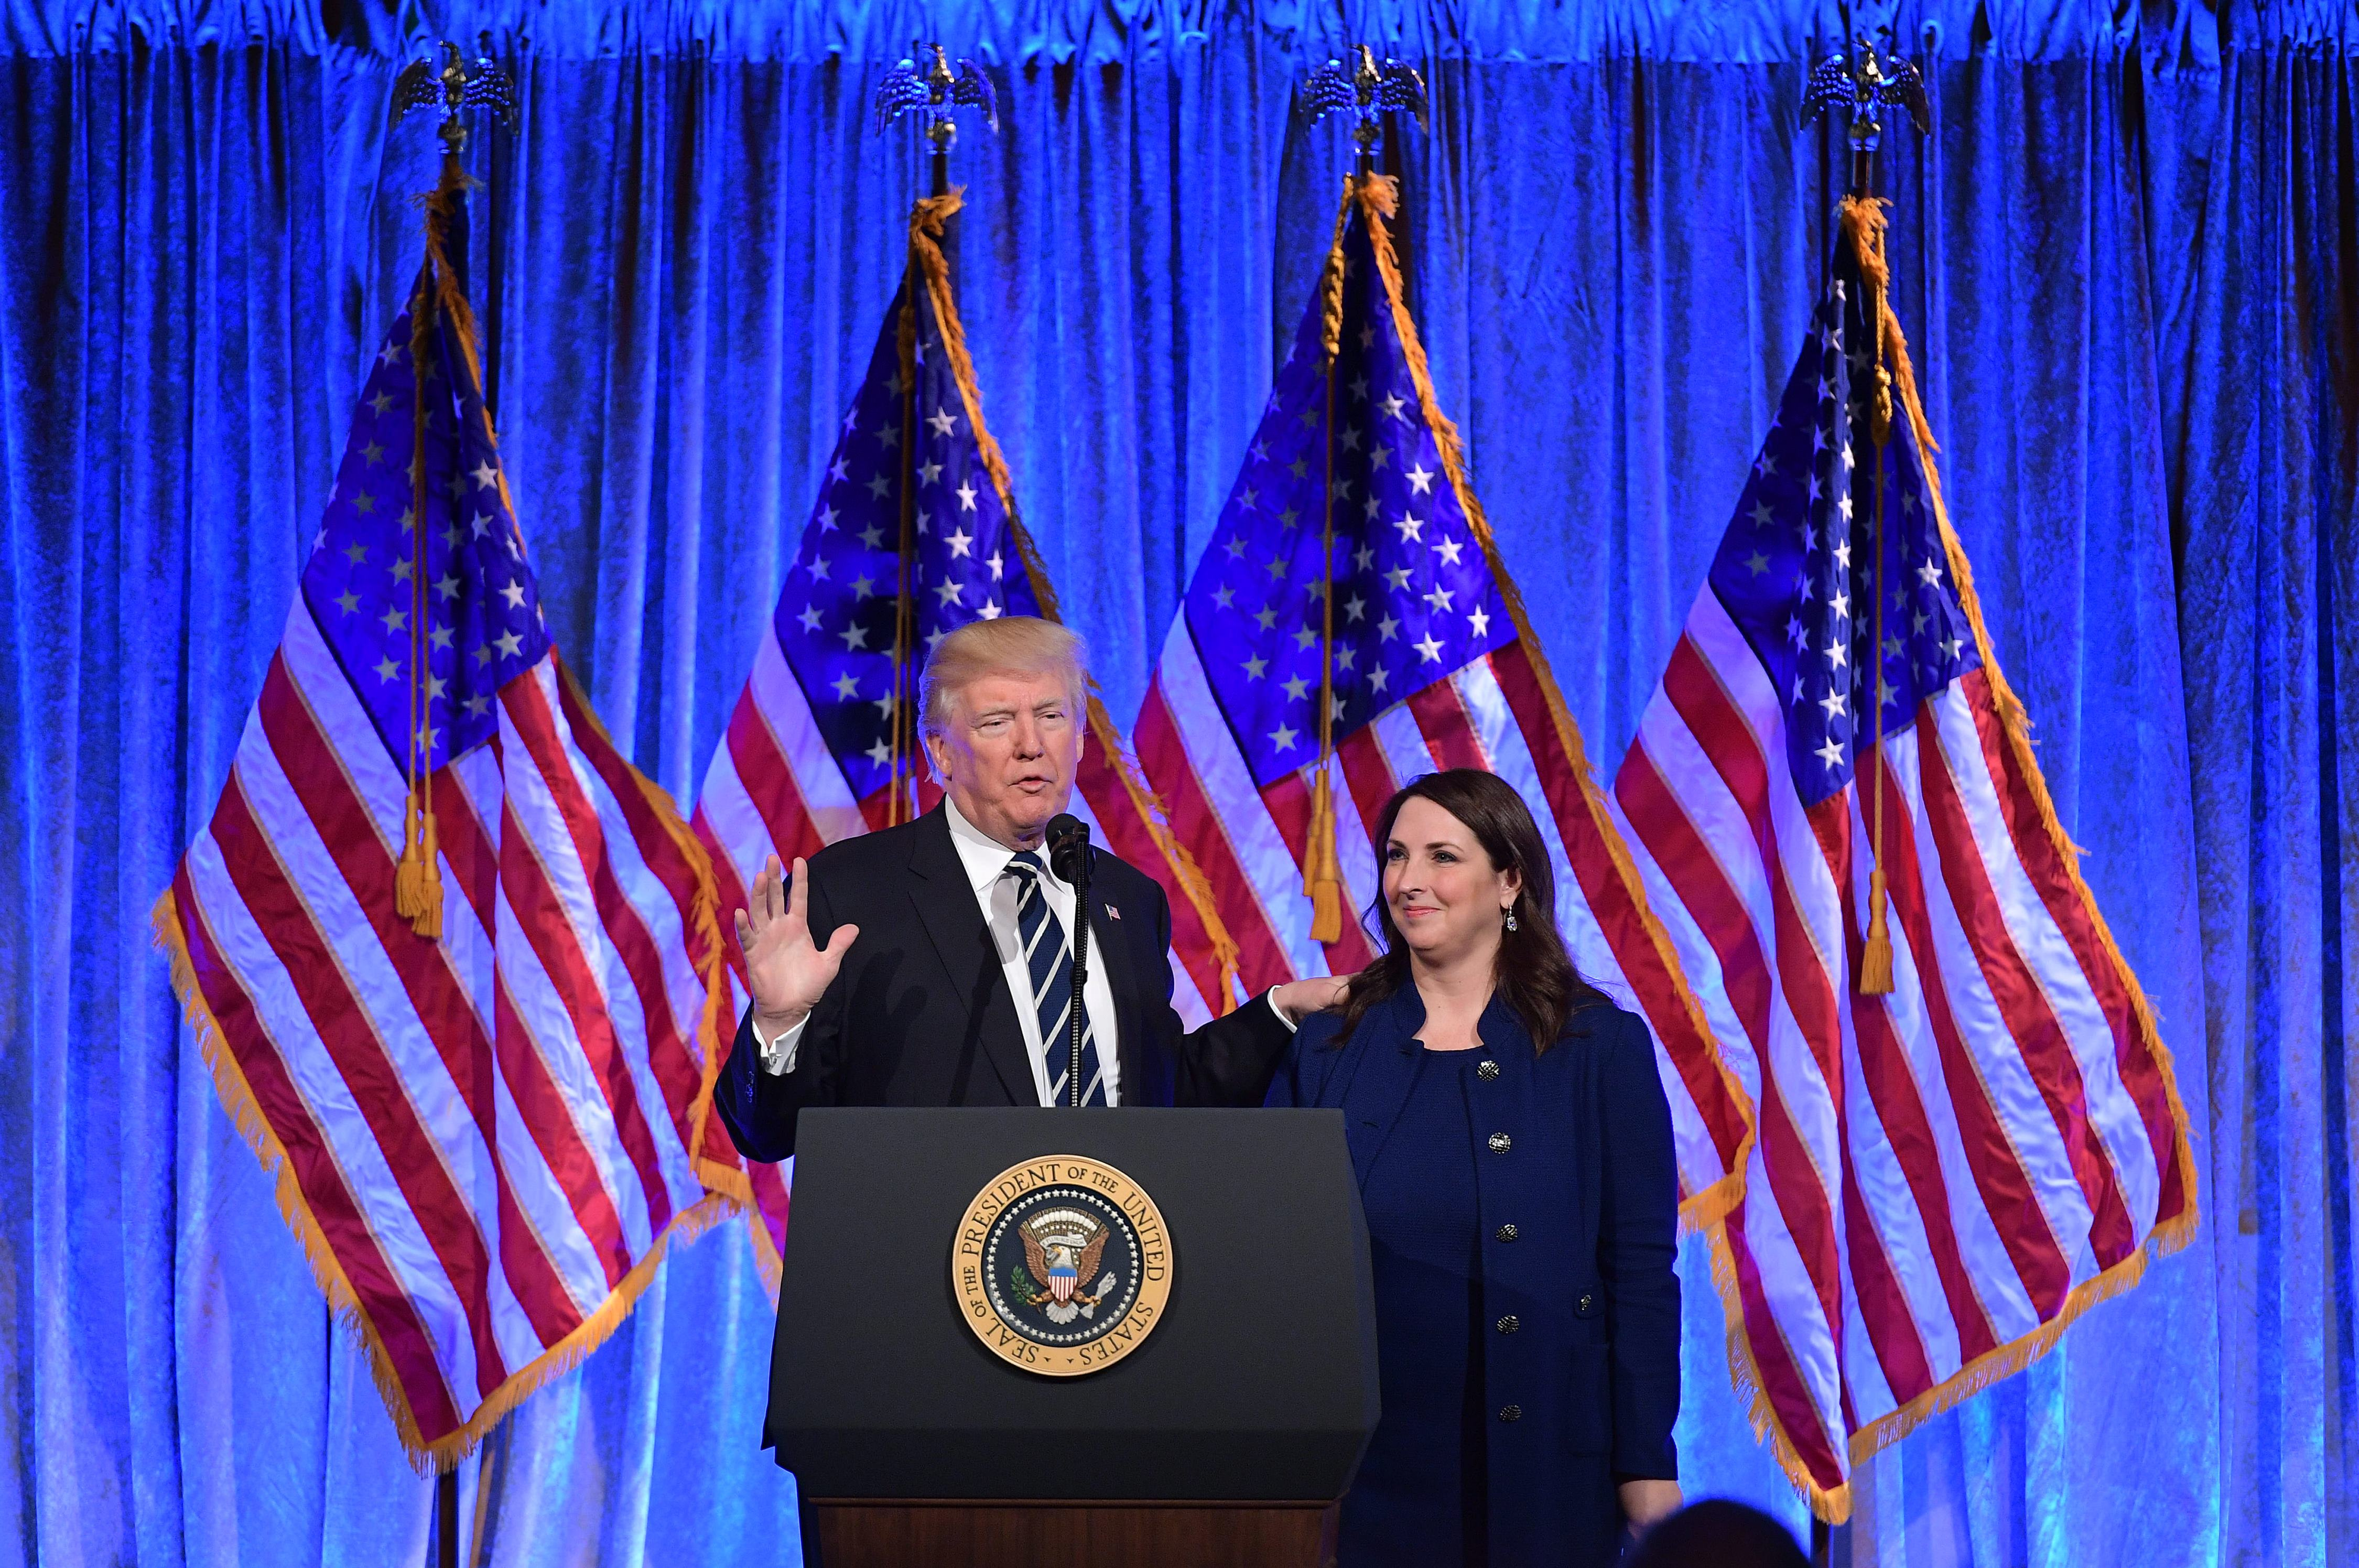 Trump and RNC Chairwoman Ronna McDaniel